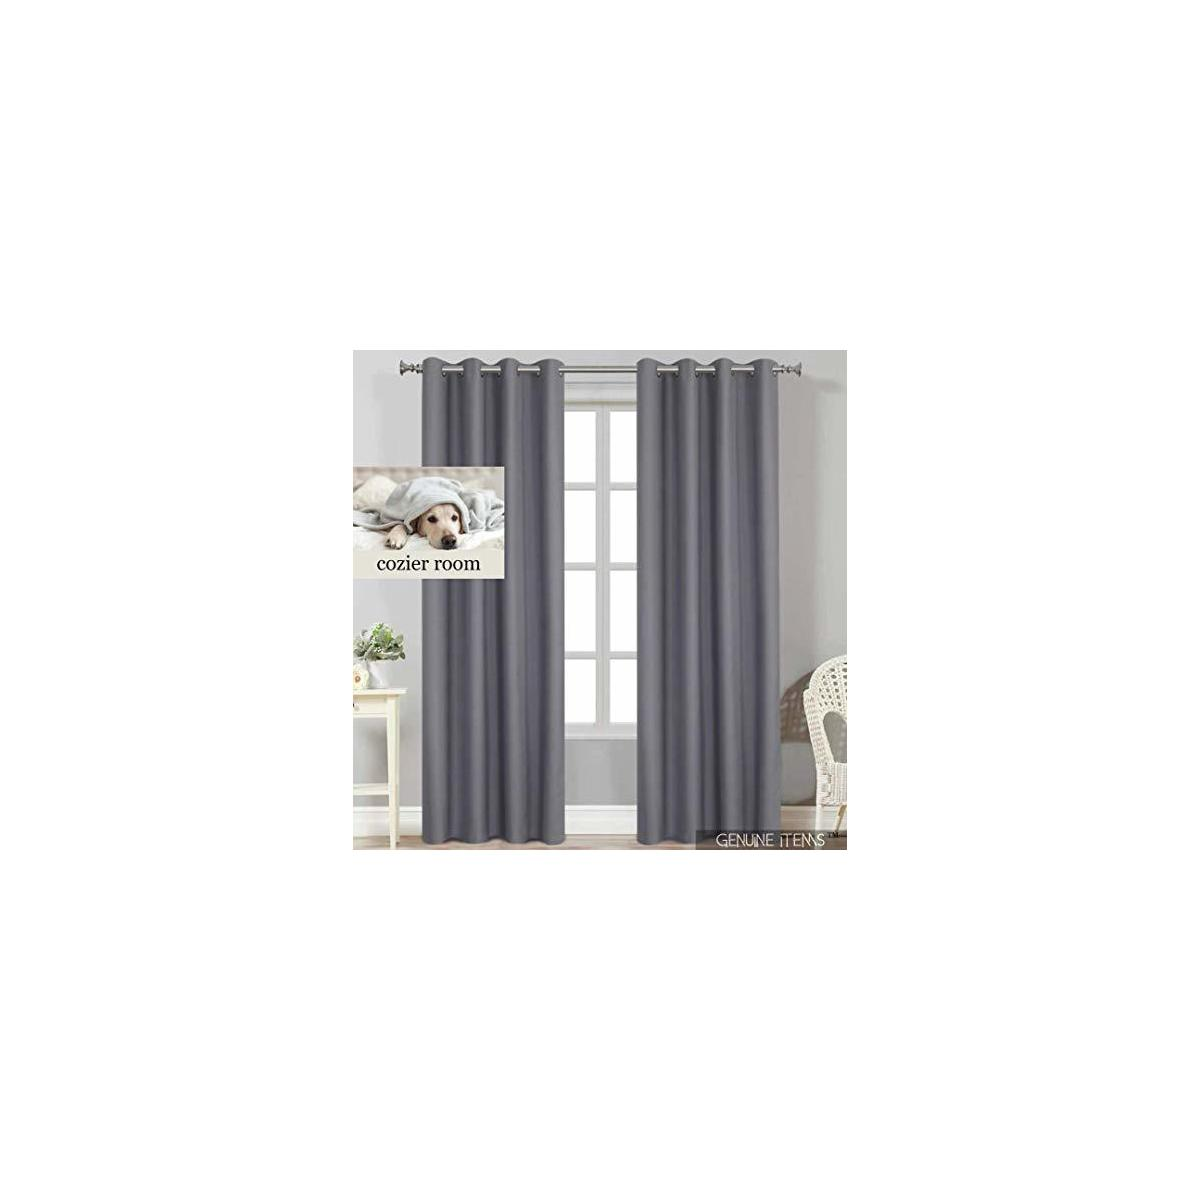 GENUINE ITEMS™ Bedroom Curtains 84 inch Length, Gray Curtains, Black Out Curtains Bedroom Drapes and Curtains, Blackout Thermal Curtains 84 inch Window Curtain Blackout. 52